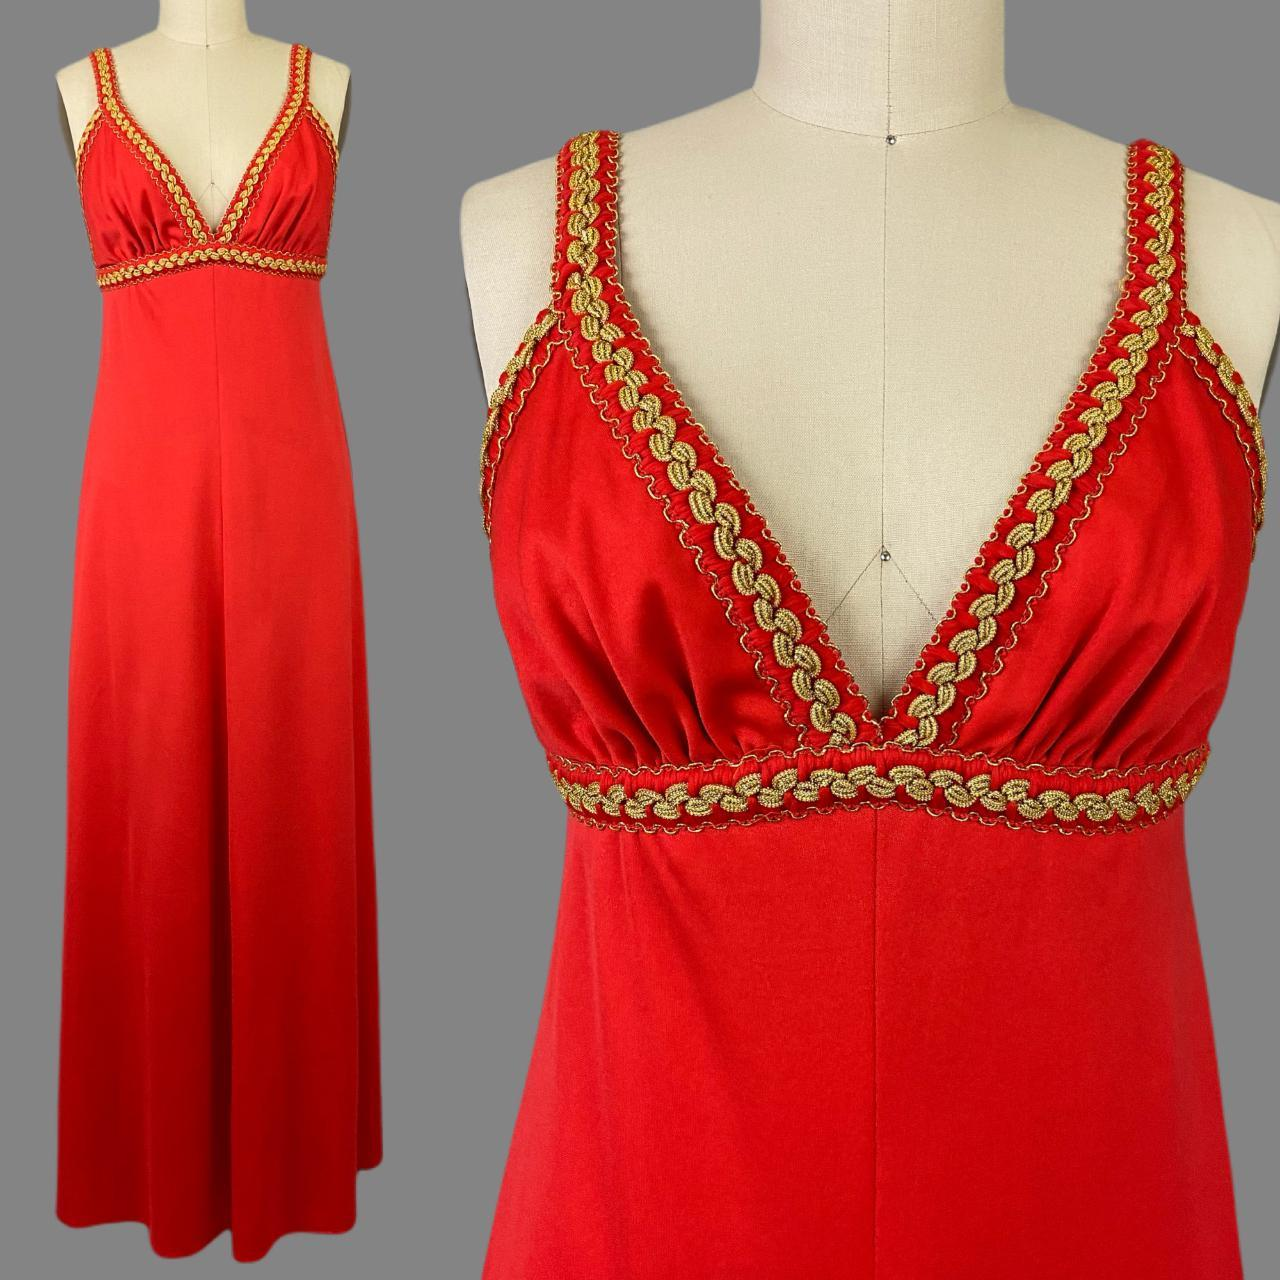 Product Image 1 - Sizzling 1970s plunging red maxi